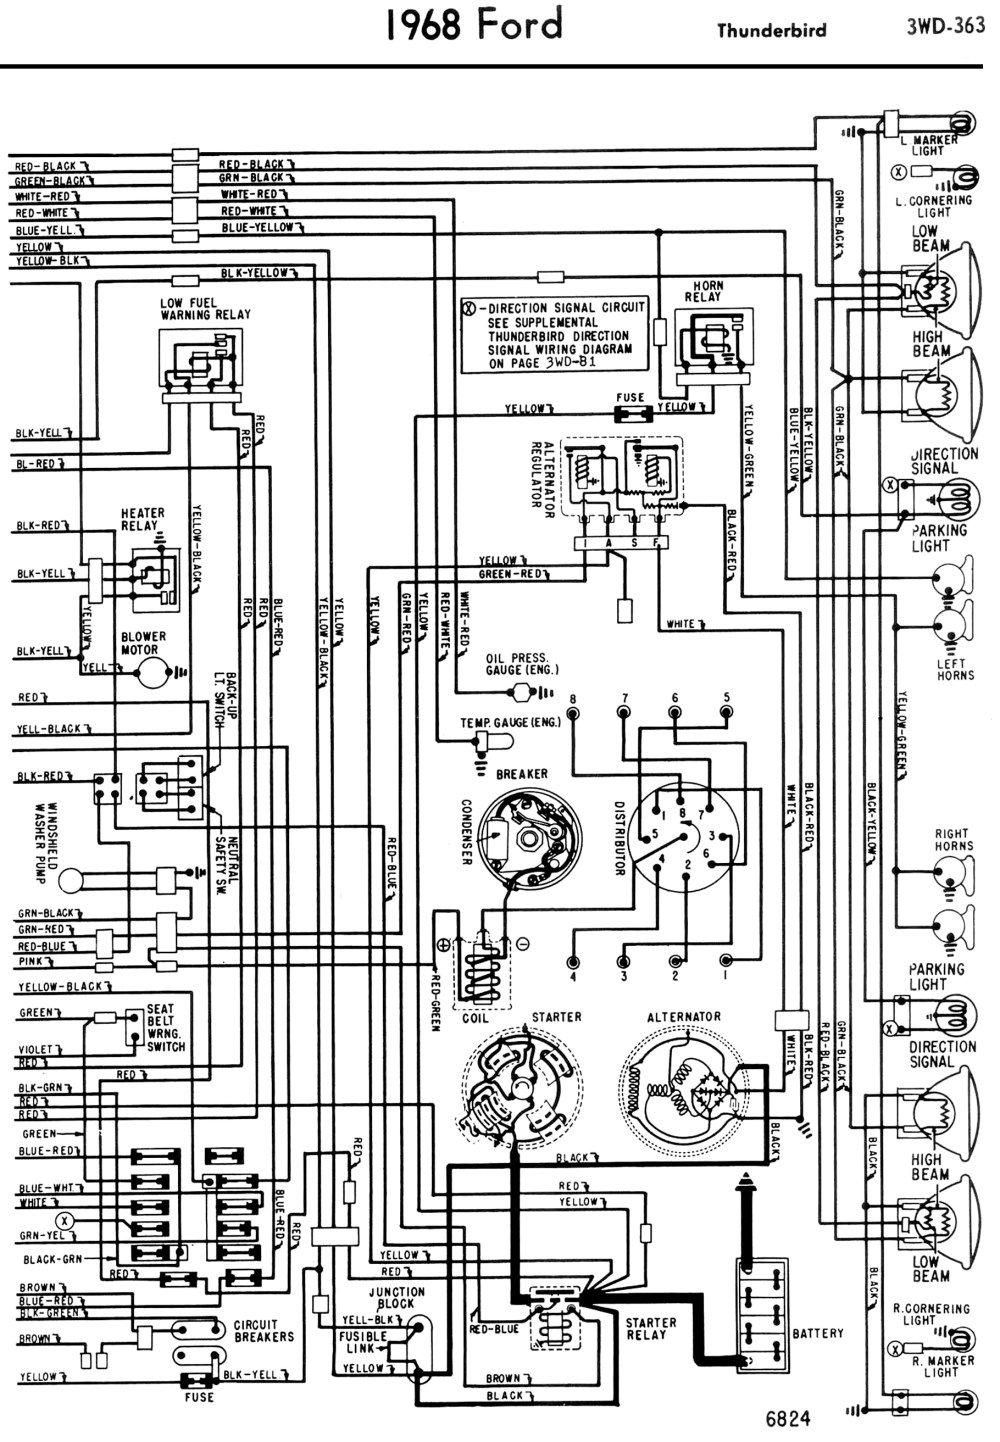 medium resolution of 1958 thunderbird wiring diagram wiring diagrams 56 ford thunderbird wiring diagram 1958 ford engine wiring wiring